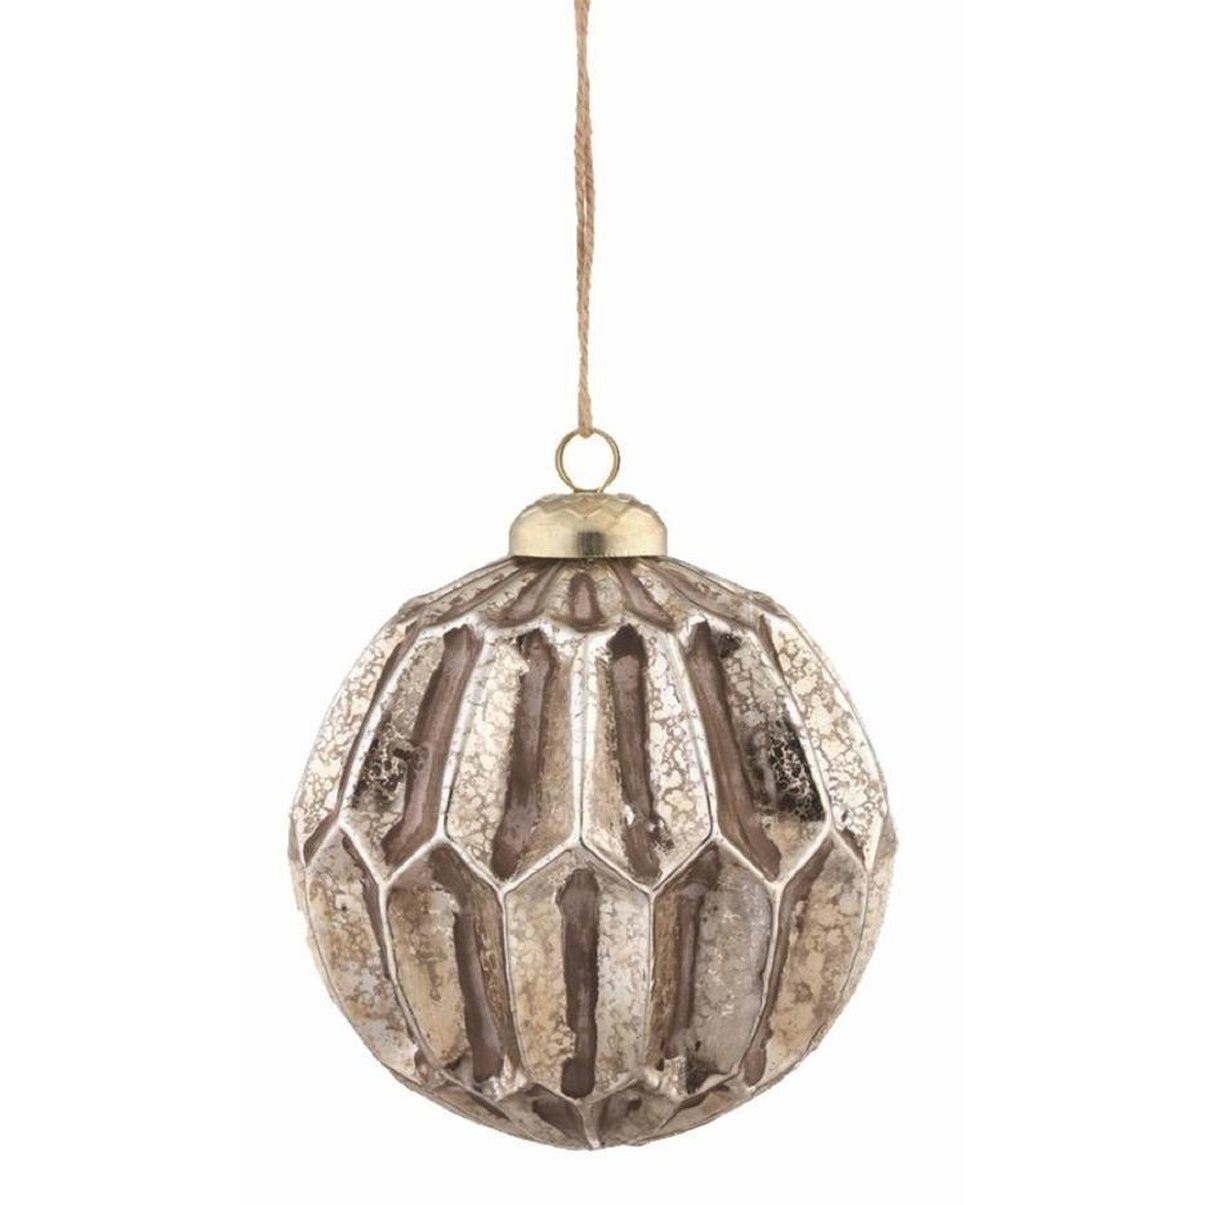 3 75 Distressed Antique Gold Mercury Glass Honeycomb Ball Christmas Ornament N A